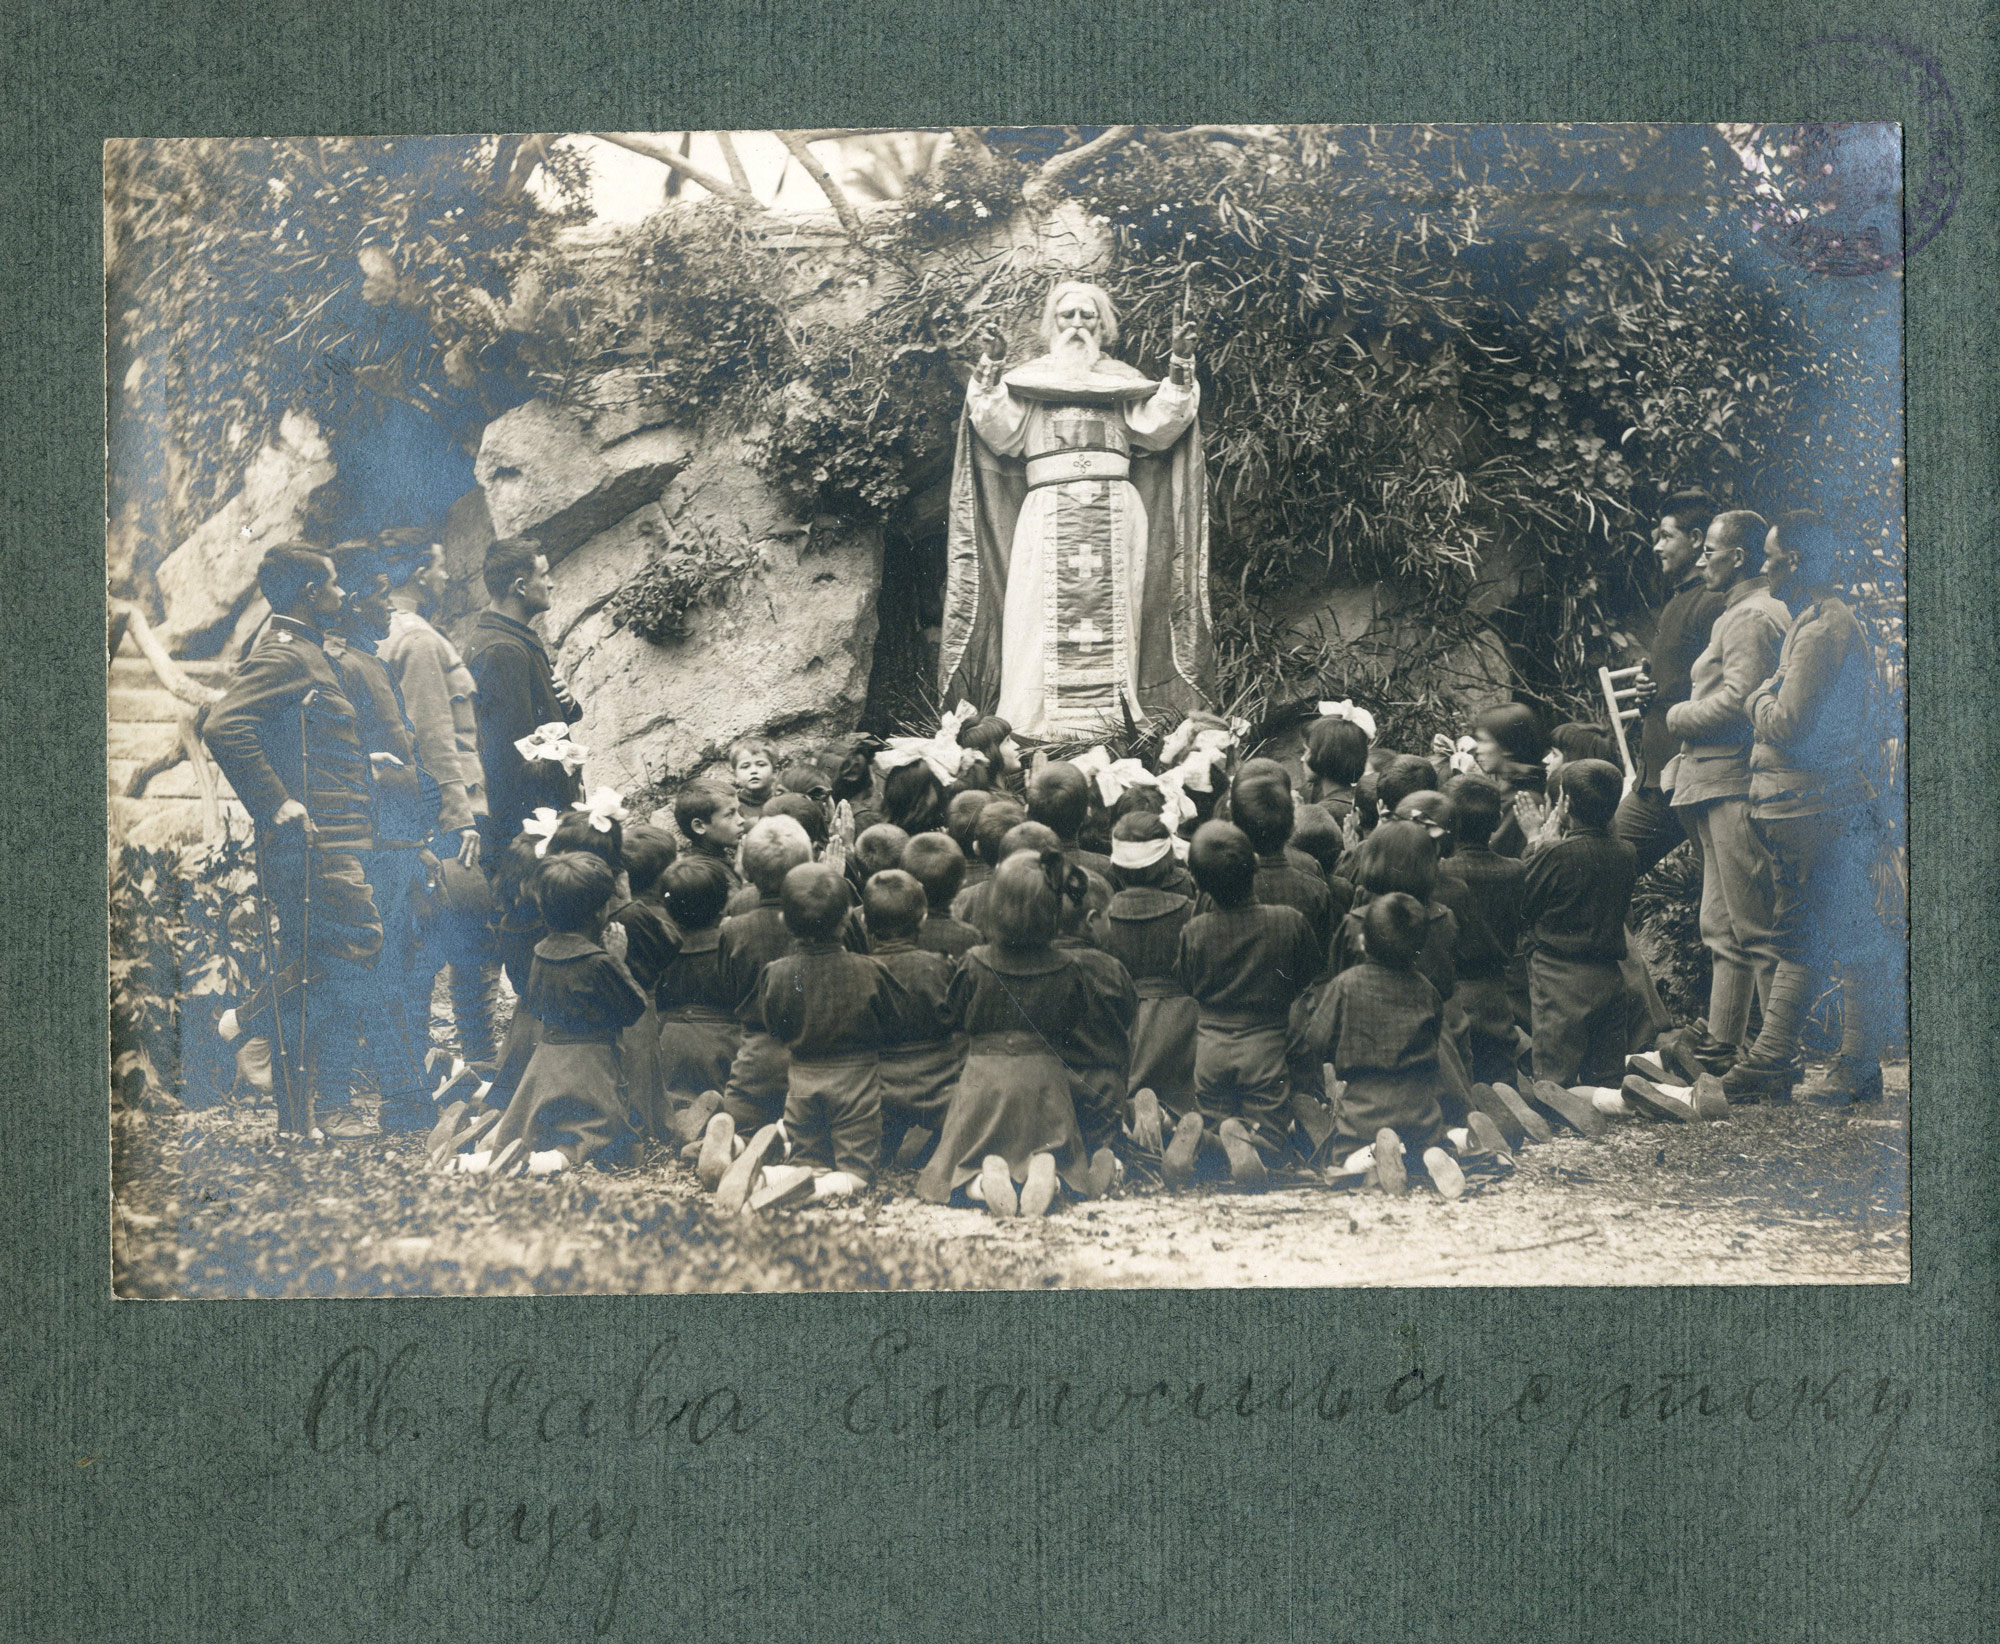 Serbian children praying in front of a statue of Saint Sava in an orphanage in Nice.